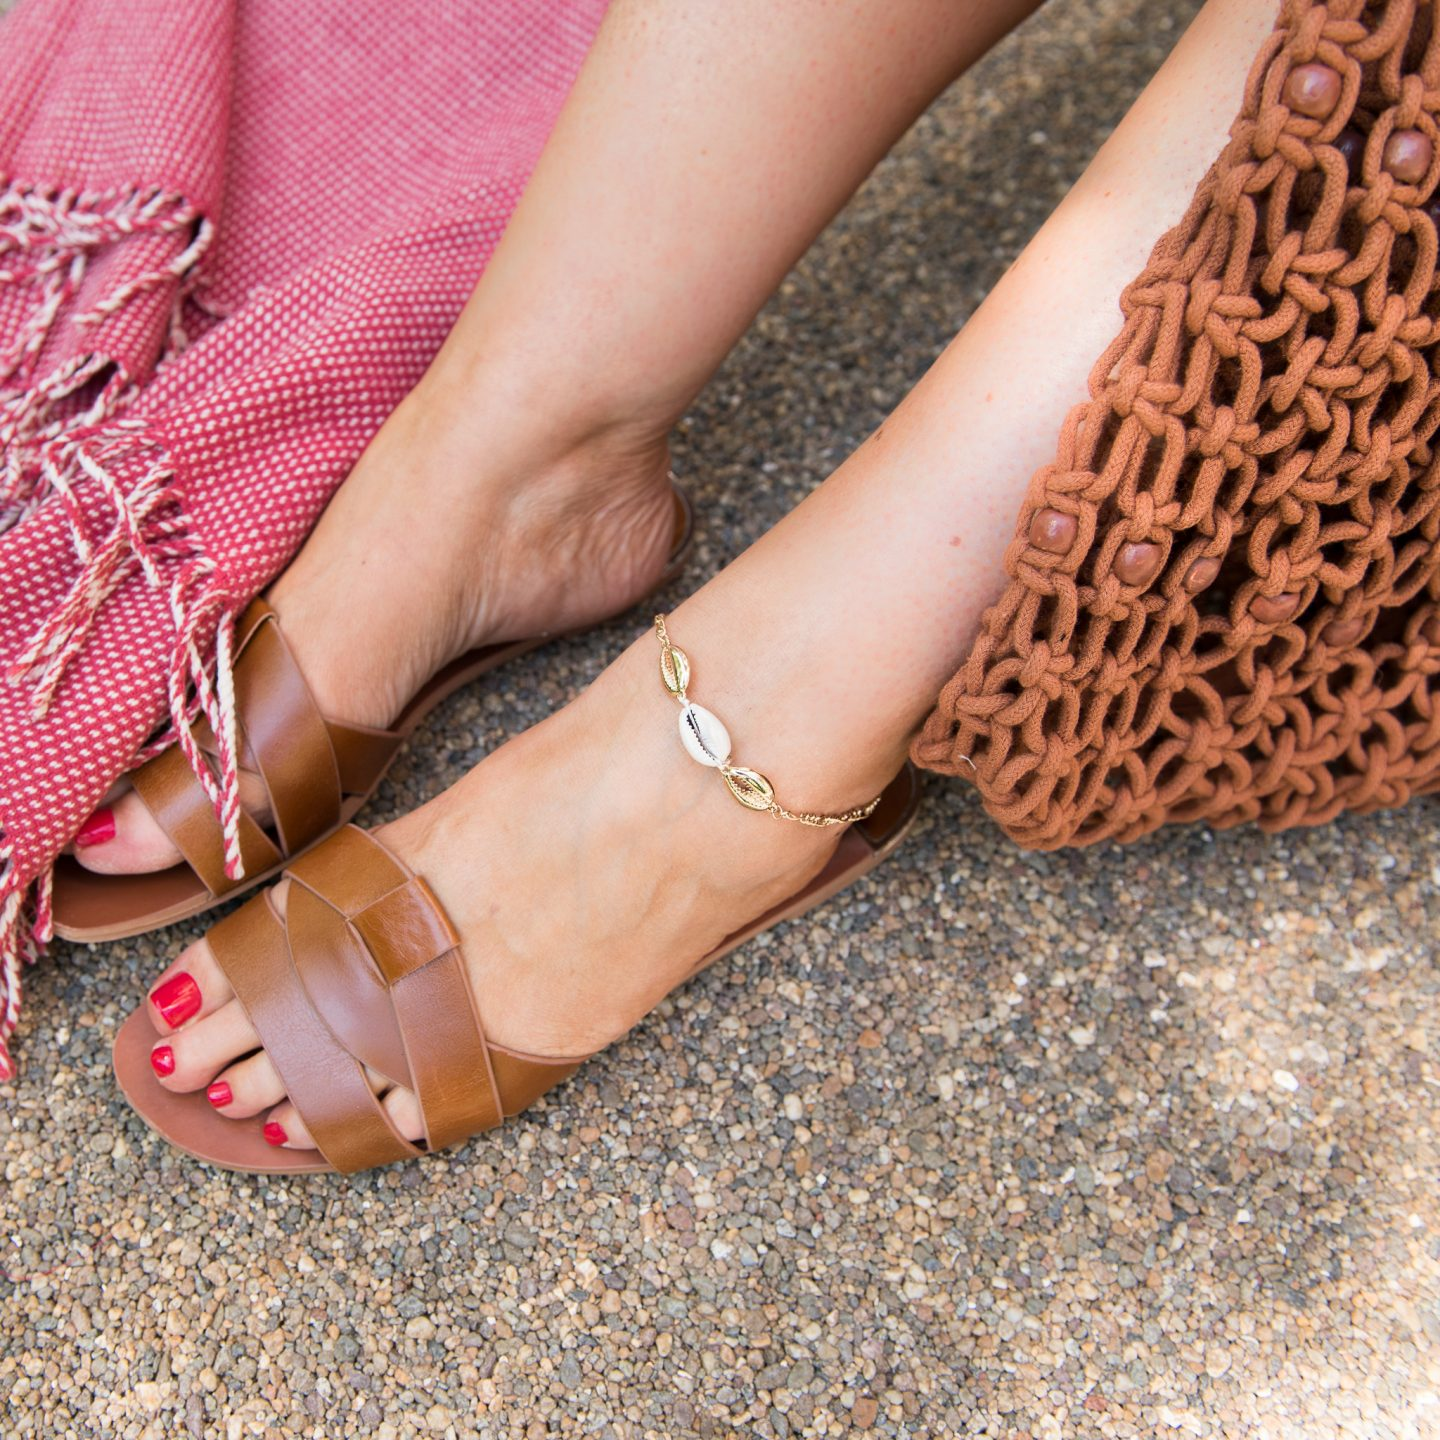 Shell anklet with tan sandals